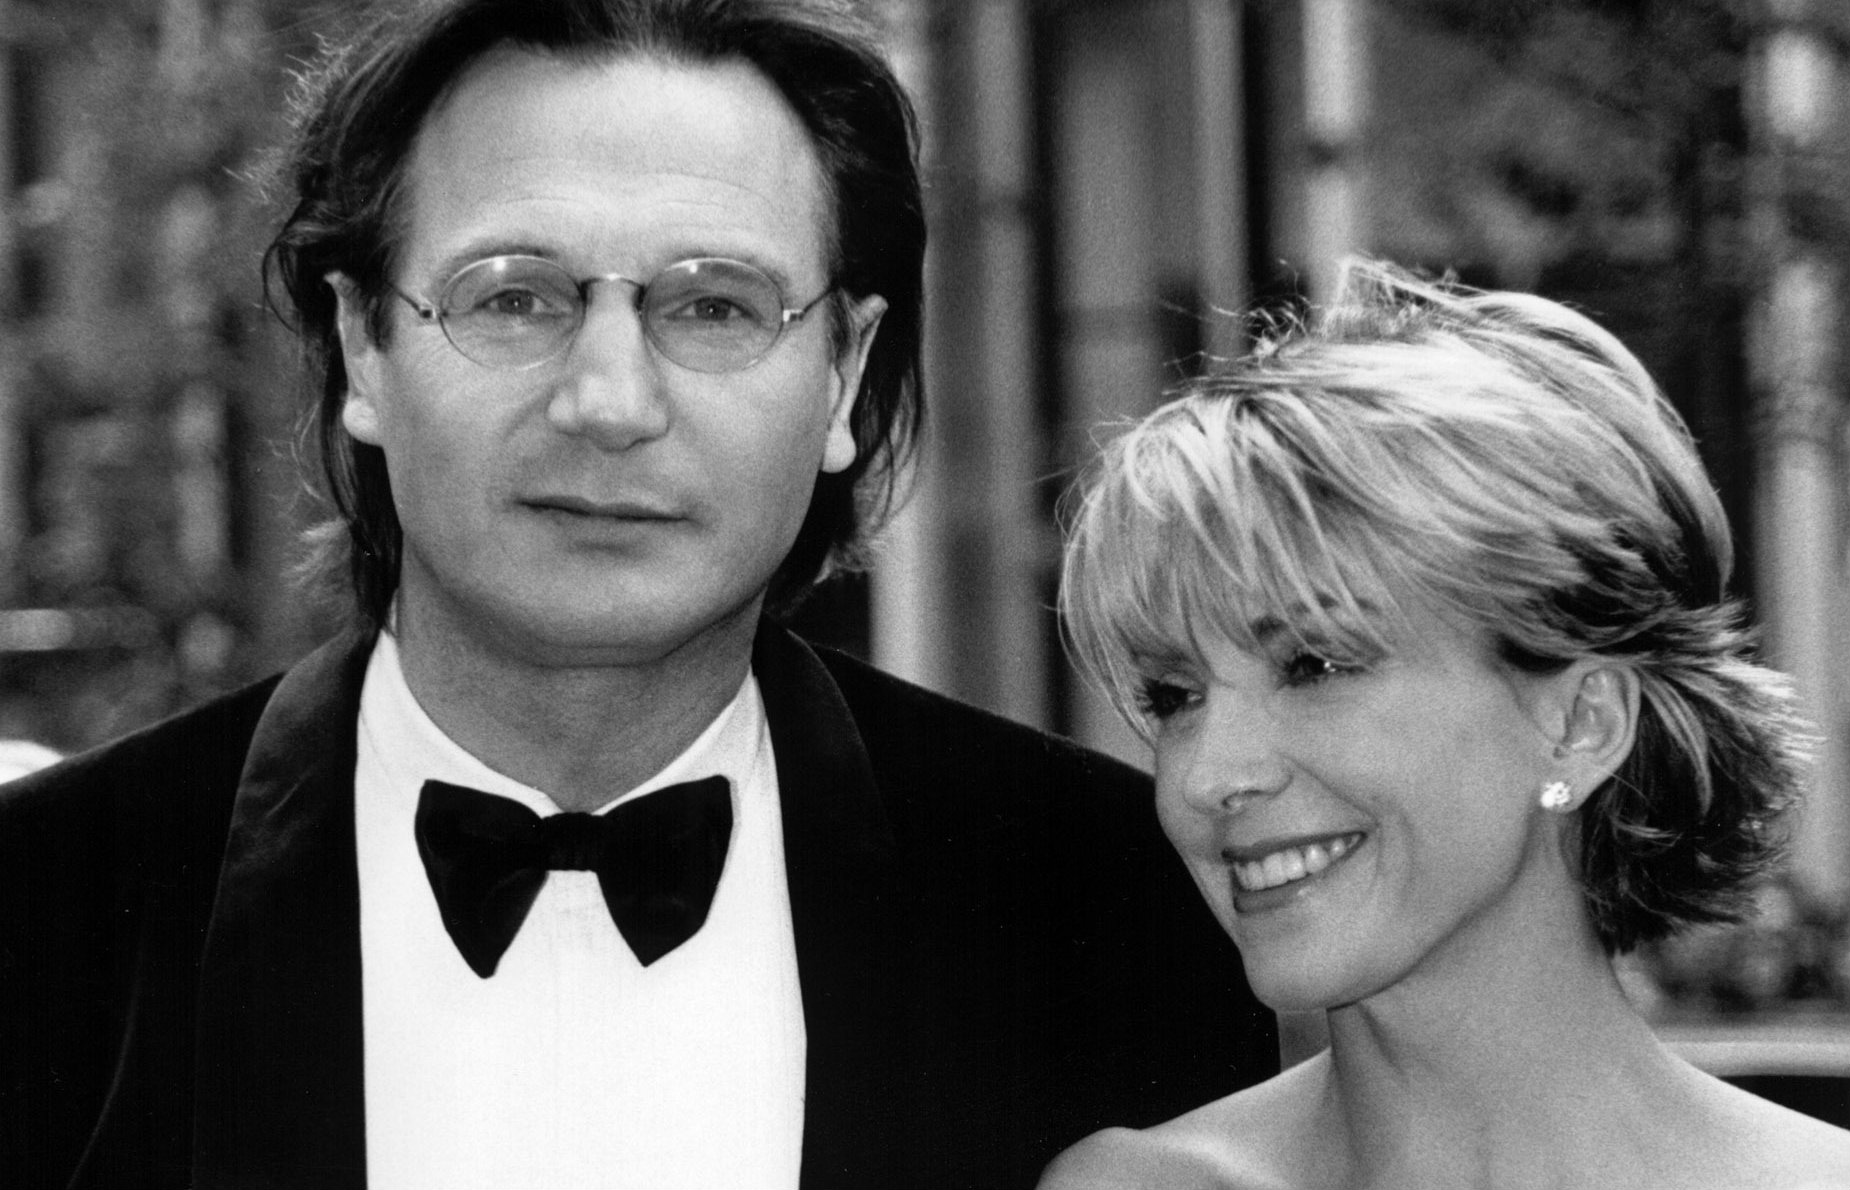 Most Tragic Love Story: The 16 Most Tragic Real-Life Hollywood Love Stories